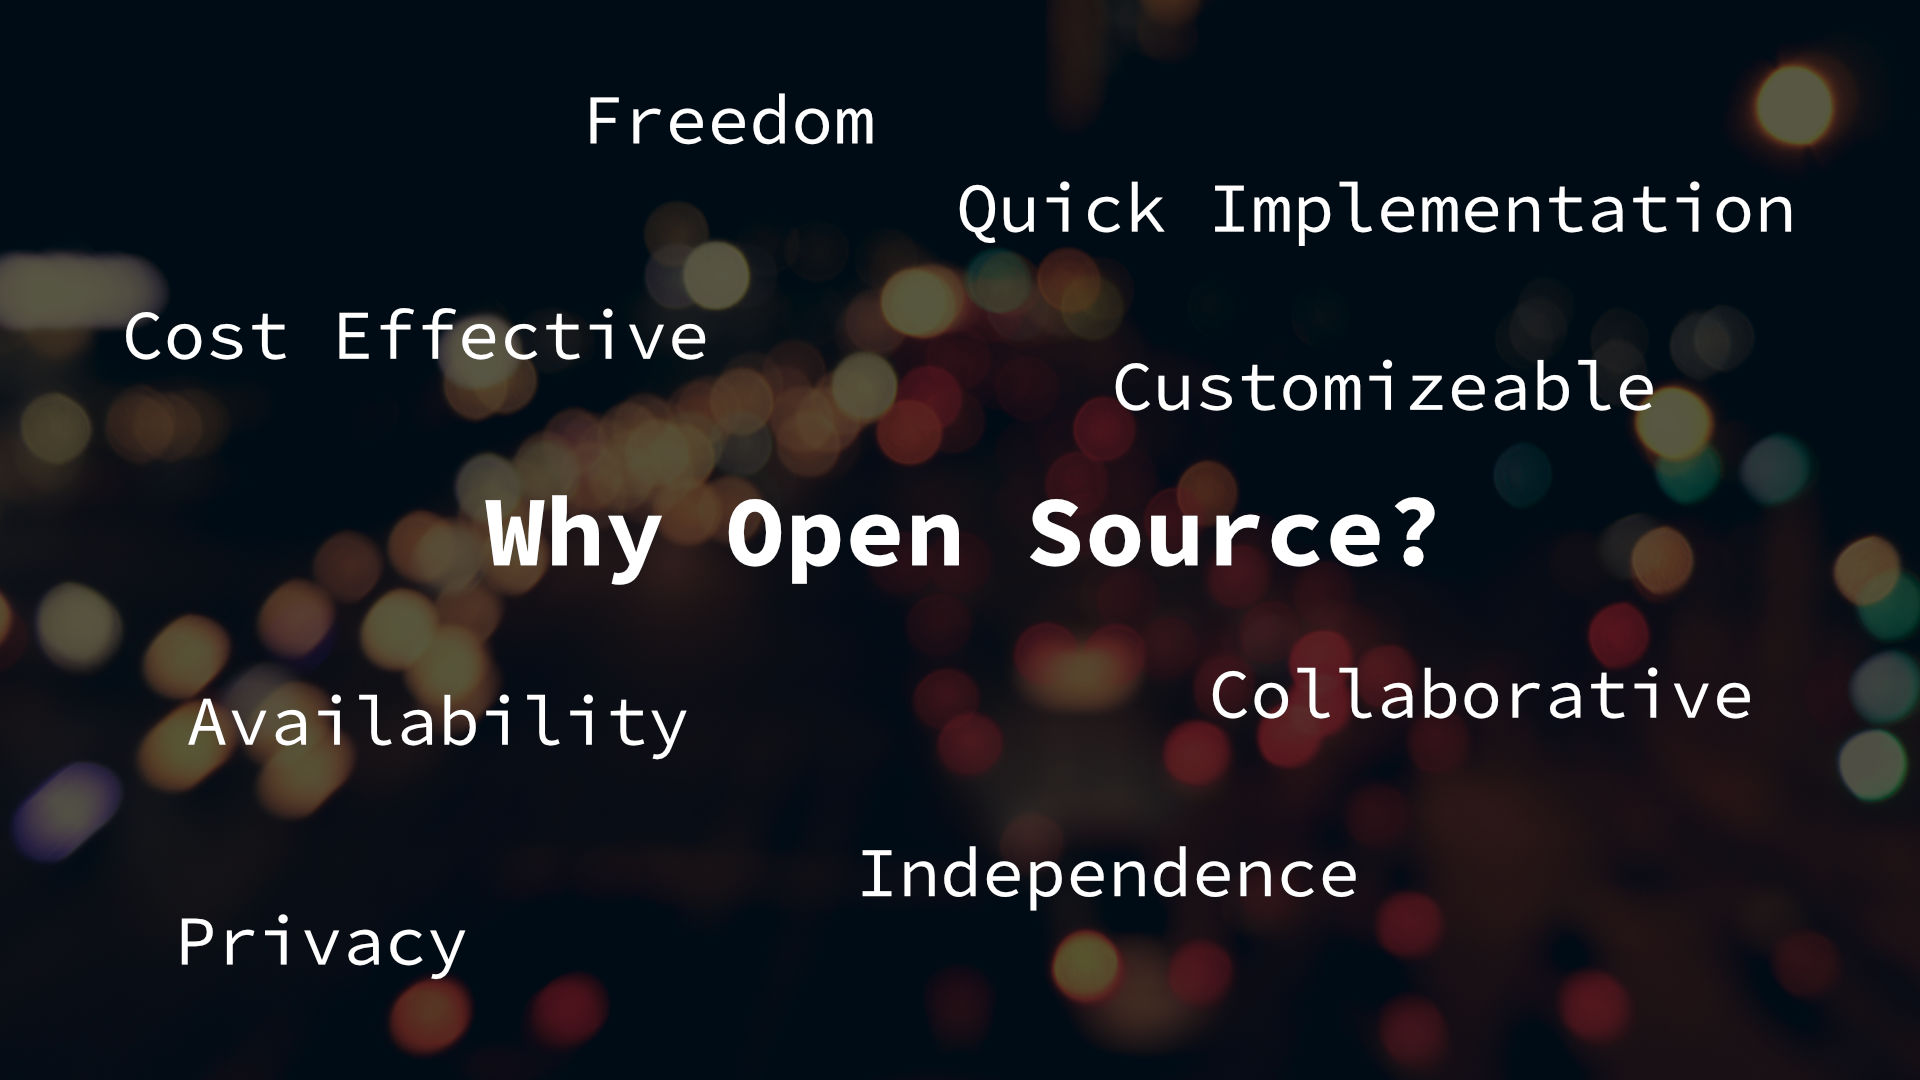 Why Open Source?